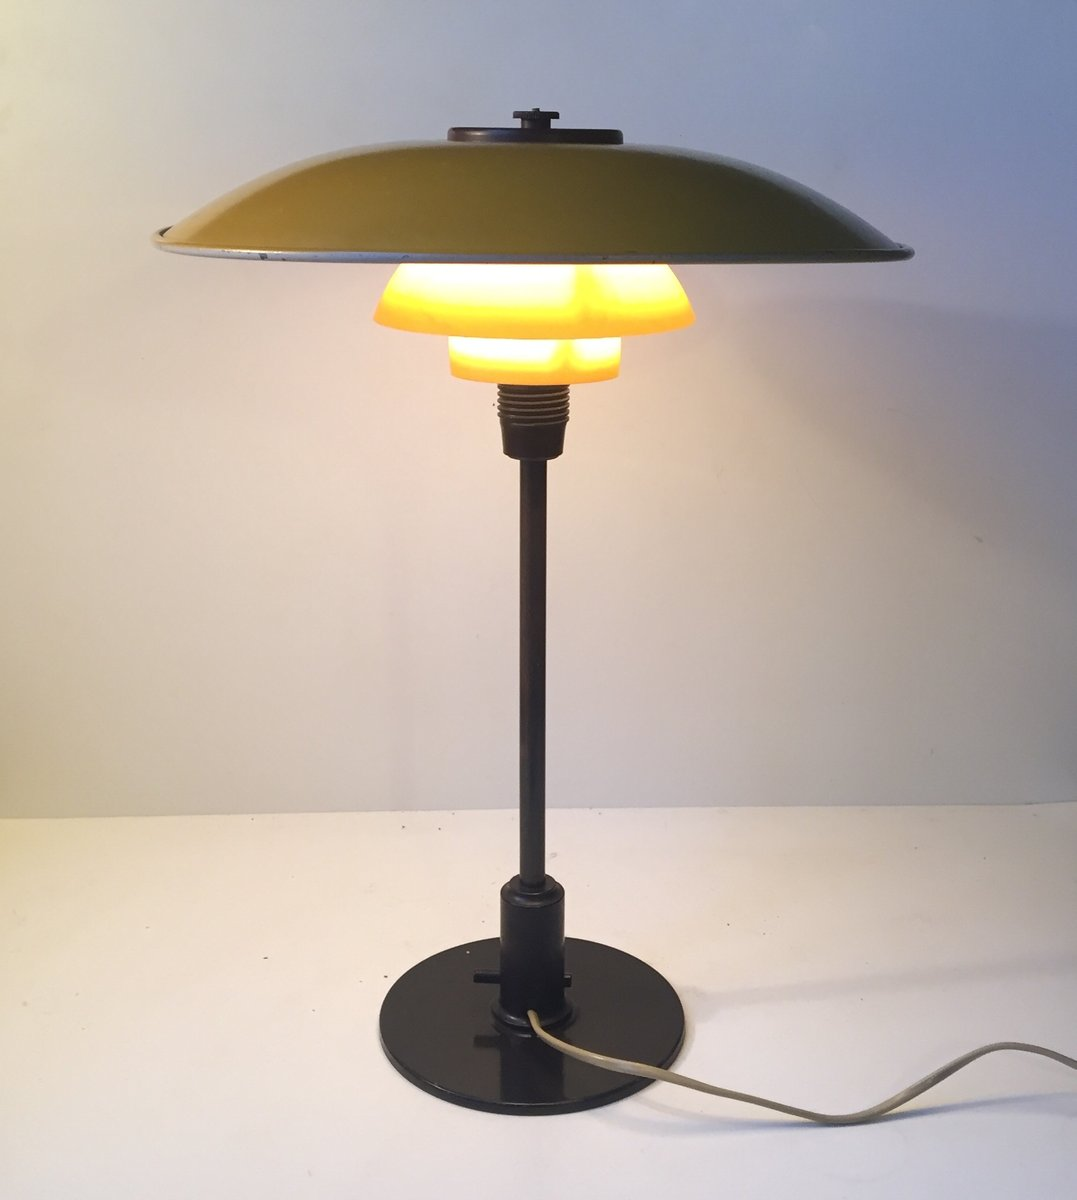 ph 3 5 2 table lamp by poul henningsen for louis poulsen 1930s for sale at pamono. Black Bedroom Furniture Sets. Home Design Ideas